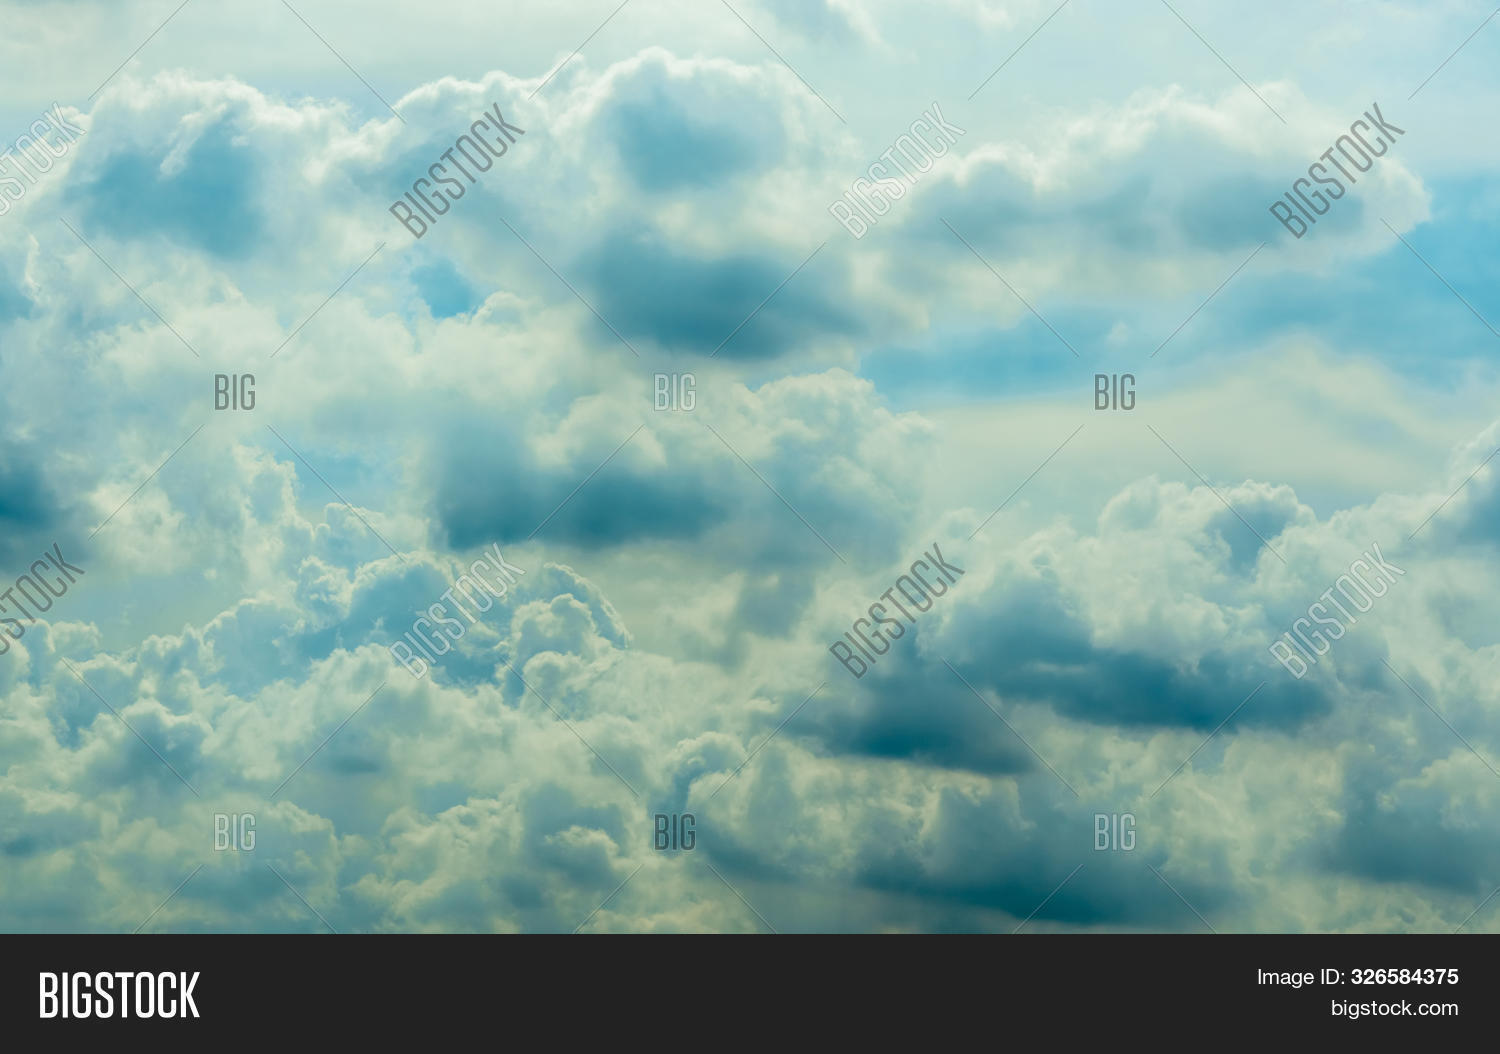 abstract,air,atmosphere,background,beautiful,beauty,blue,bright,climate,clouds,cloudscape,cloudy,color,cotton,cumulus,dark,day,dramatic,environment,feel,fluffy,freedom,good,happy,heaven,high,landscape,light,natural,nature,outdoor,oxygen,ozone,pattern,peaceful,puffy,scenic,season,sky,soft,space,spring,storm,summer,sunlight,texture,view,weather,white,wish